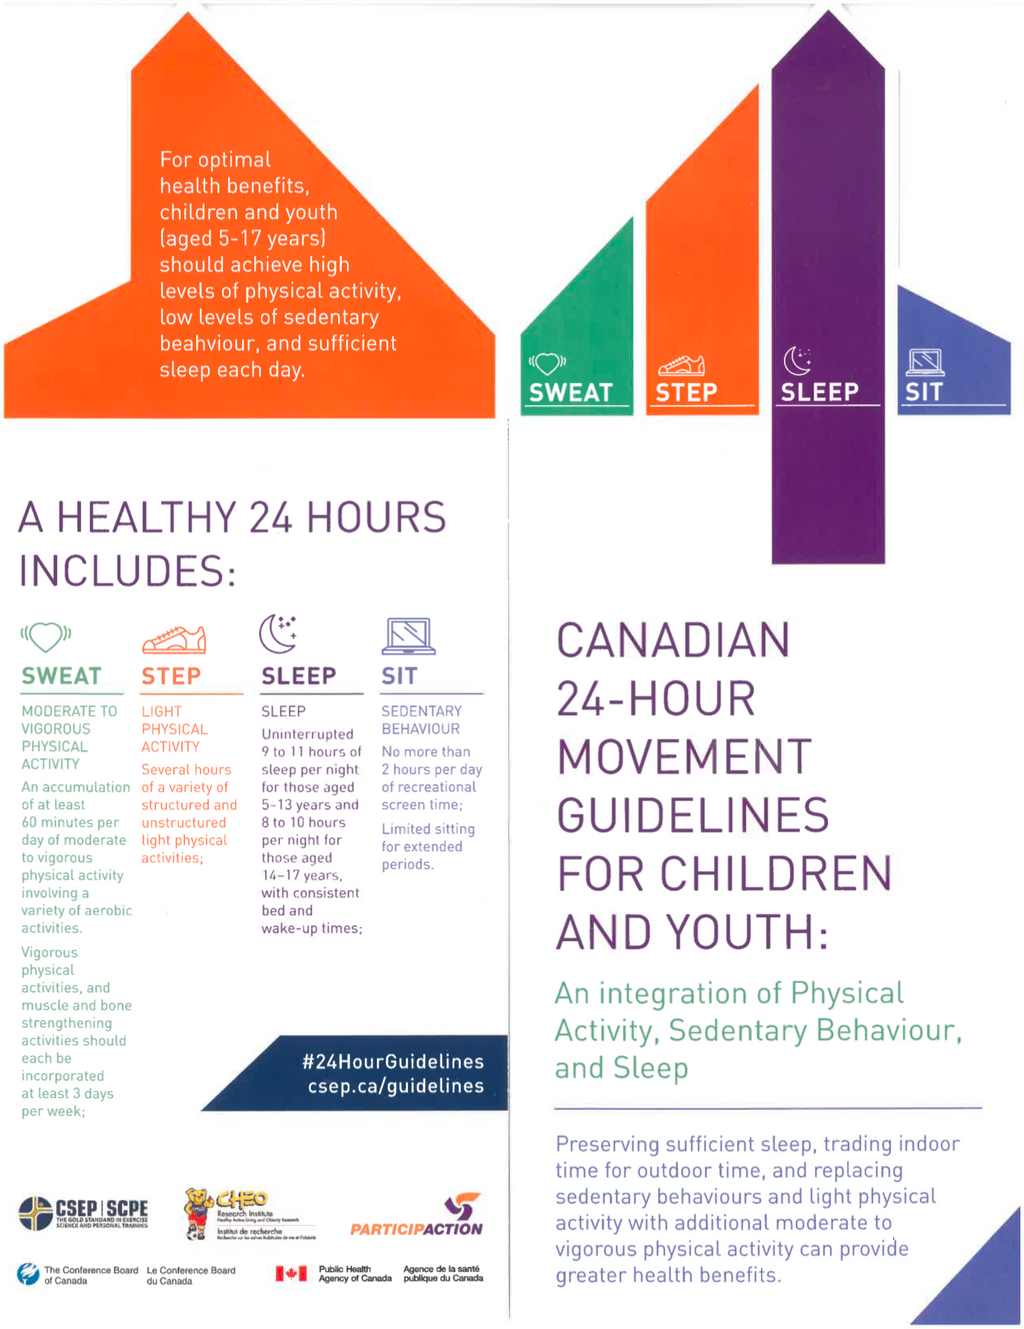 24-Hour Movement Guidelines for Children and Youth - Rack Card